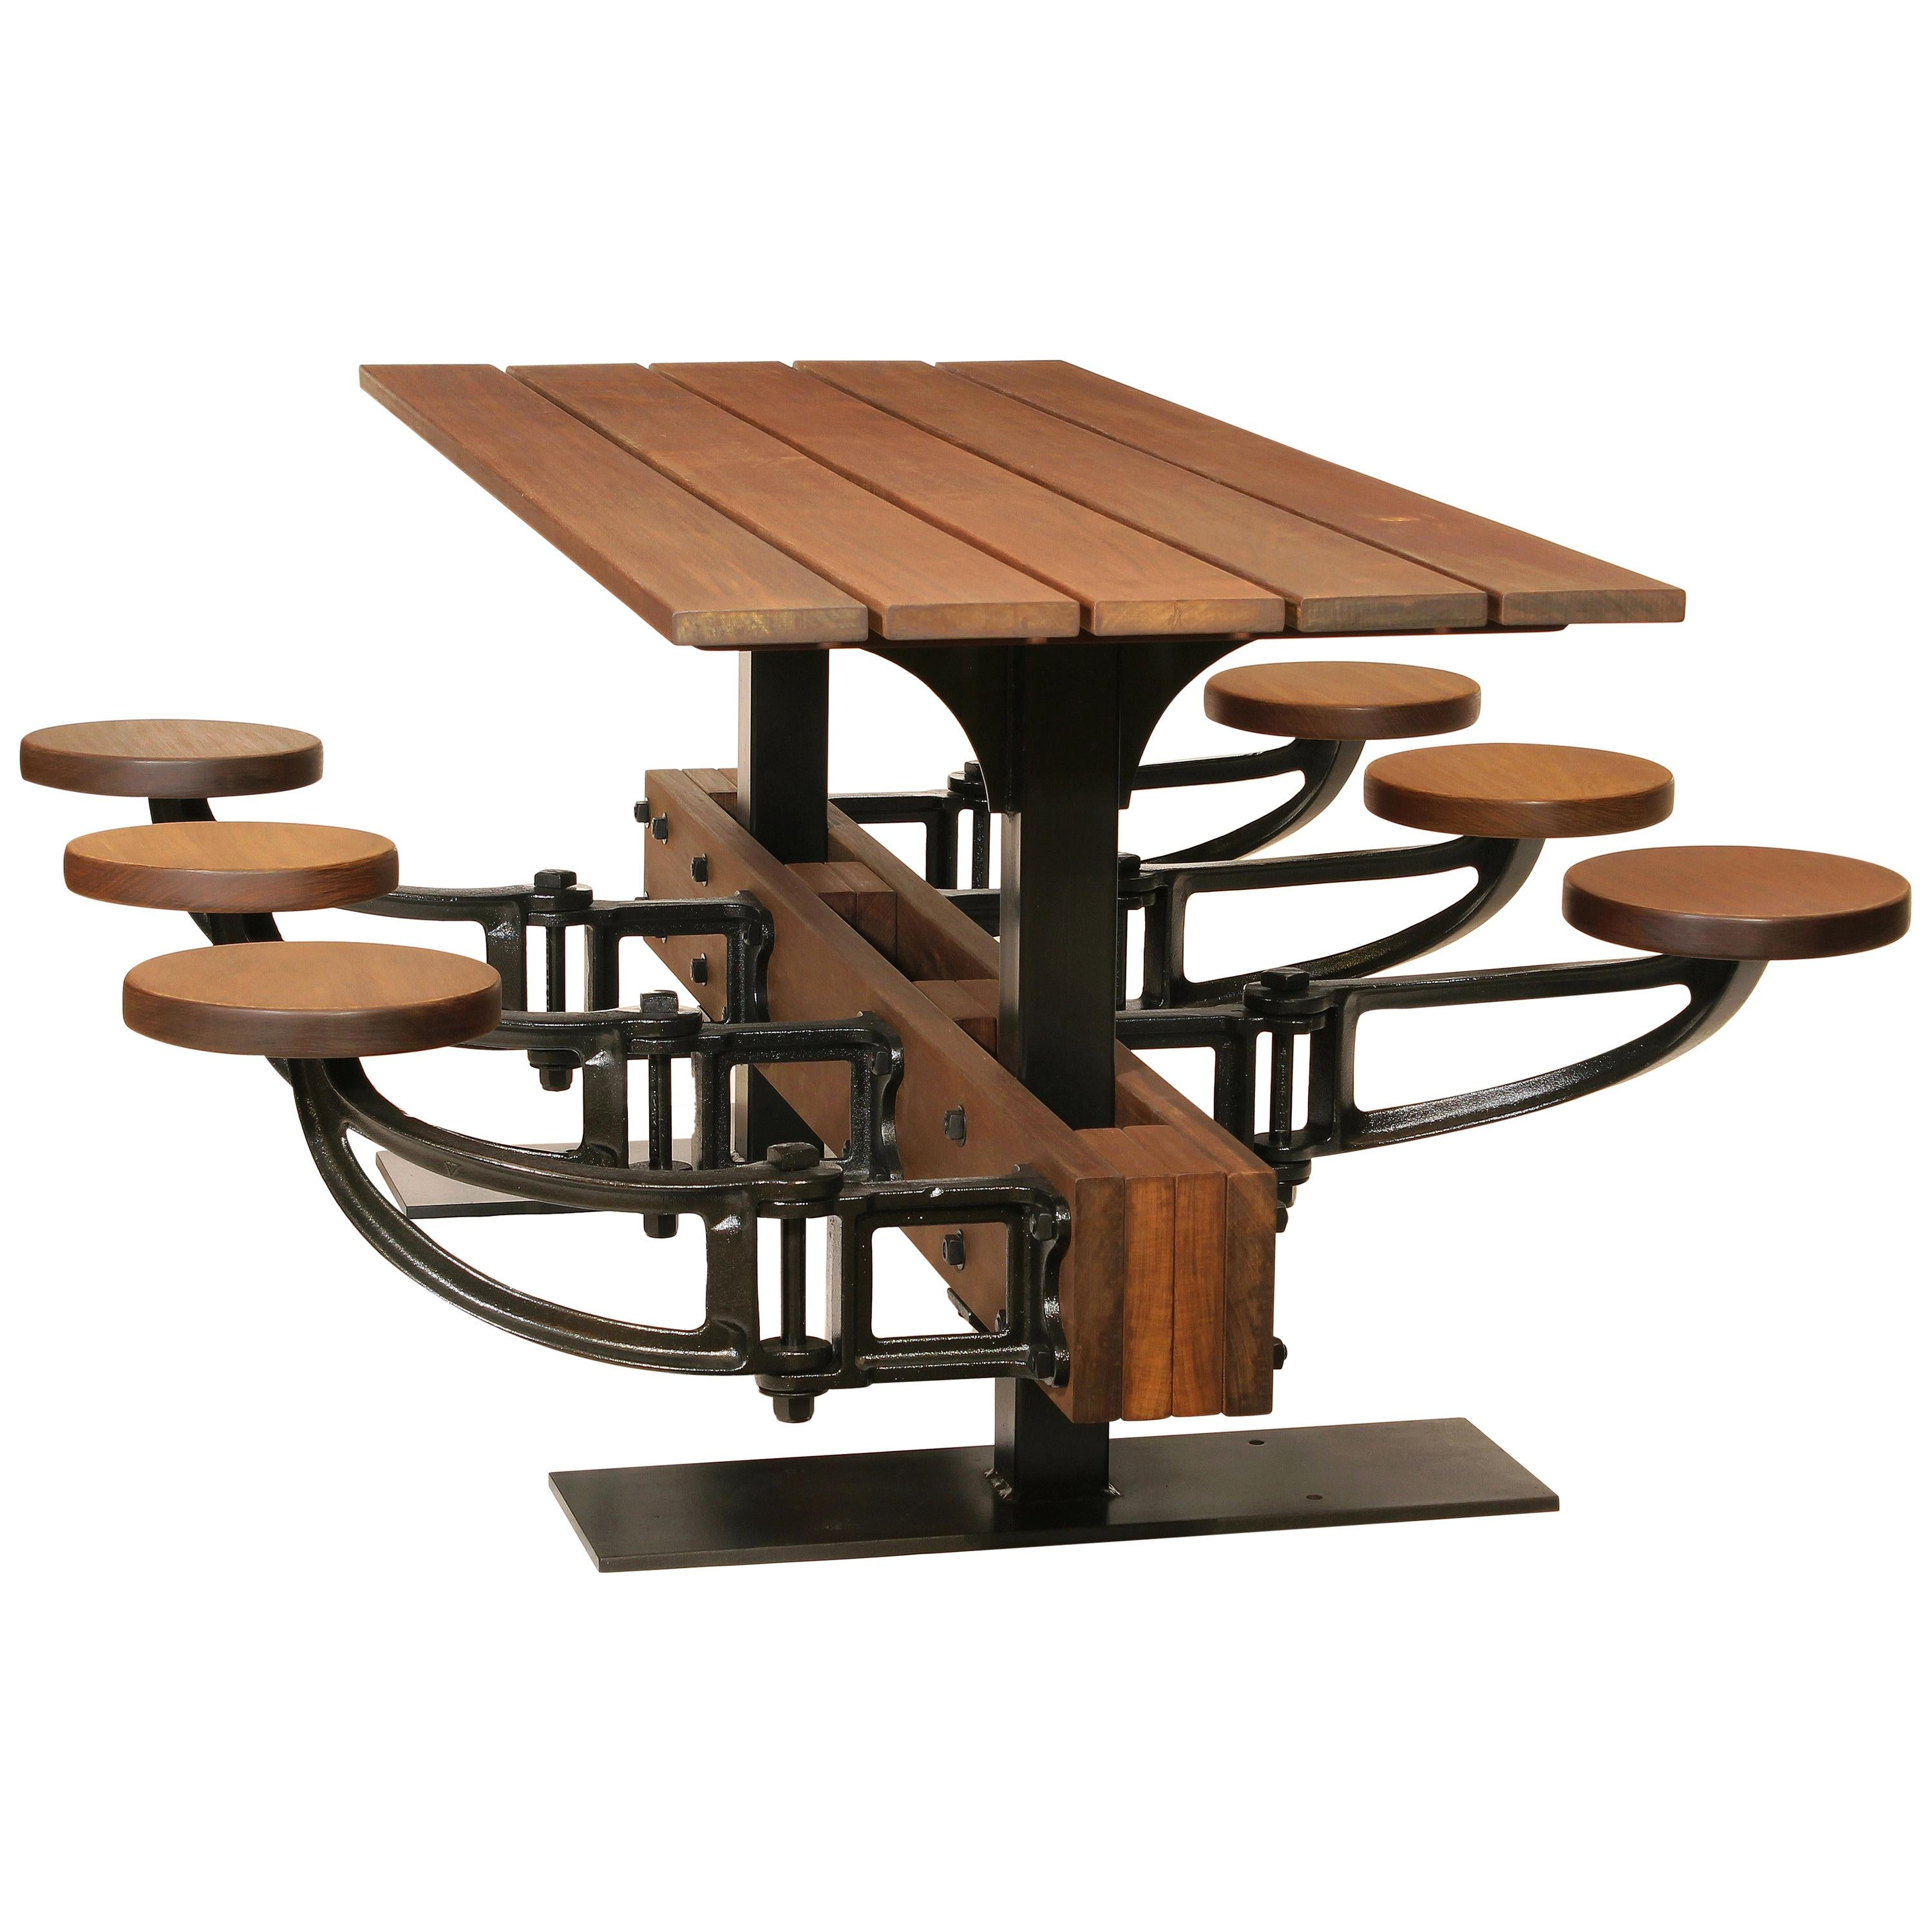 Industrial Swing-Out-Seat Outdoor Dining Table